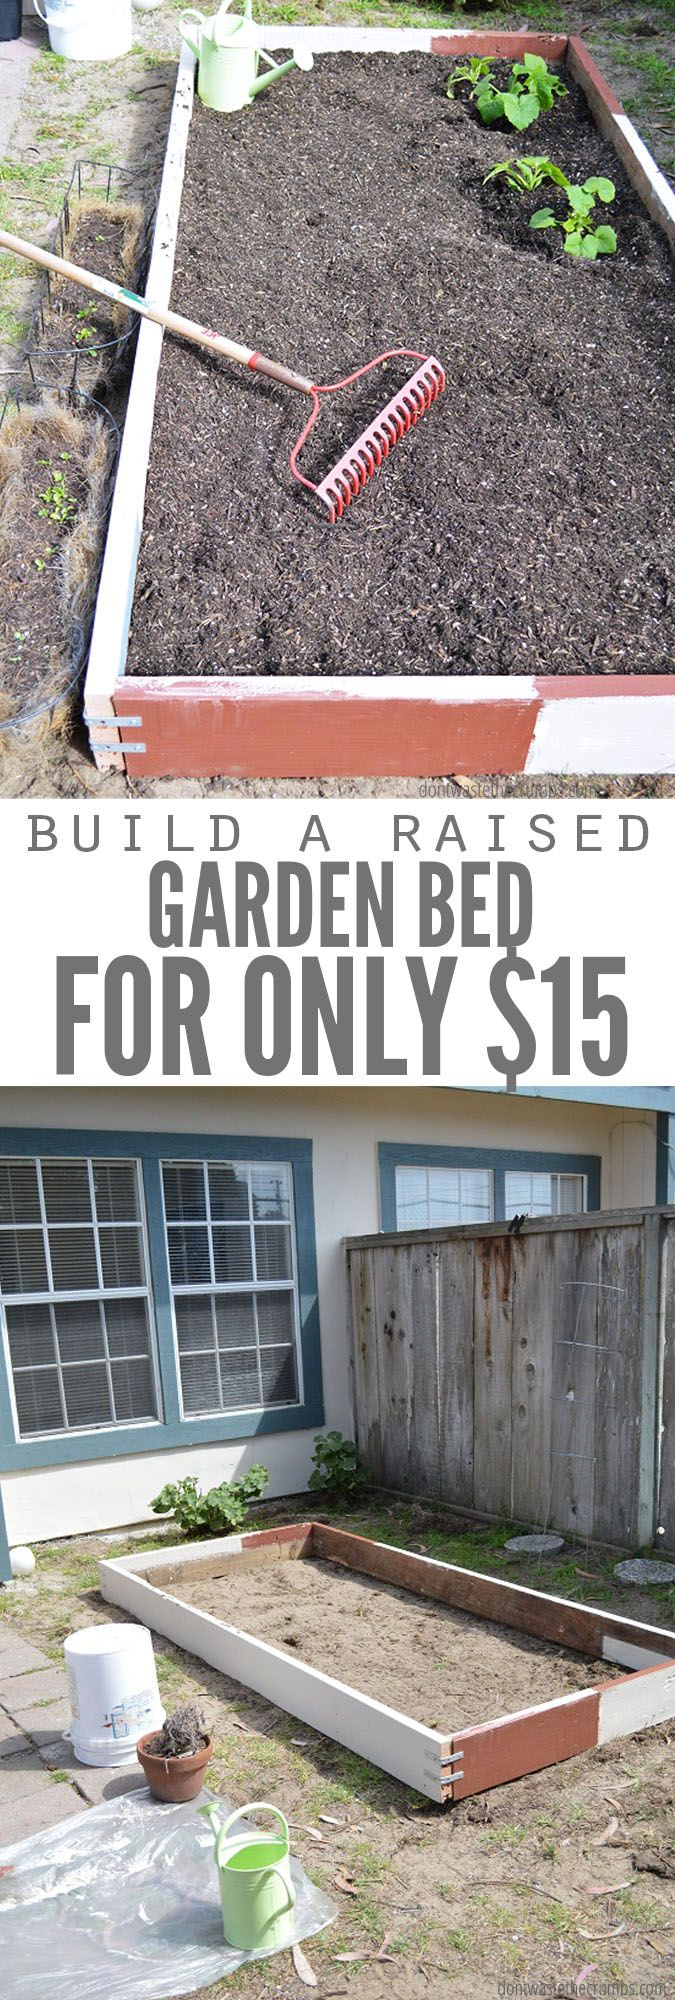 How to Build a Raised Garden Bed for Under $15